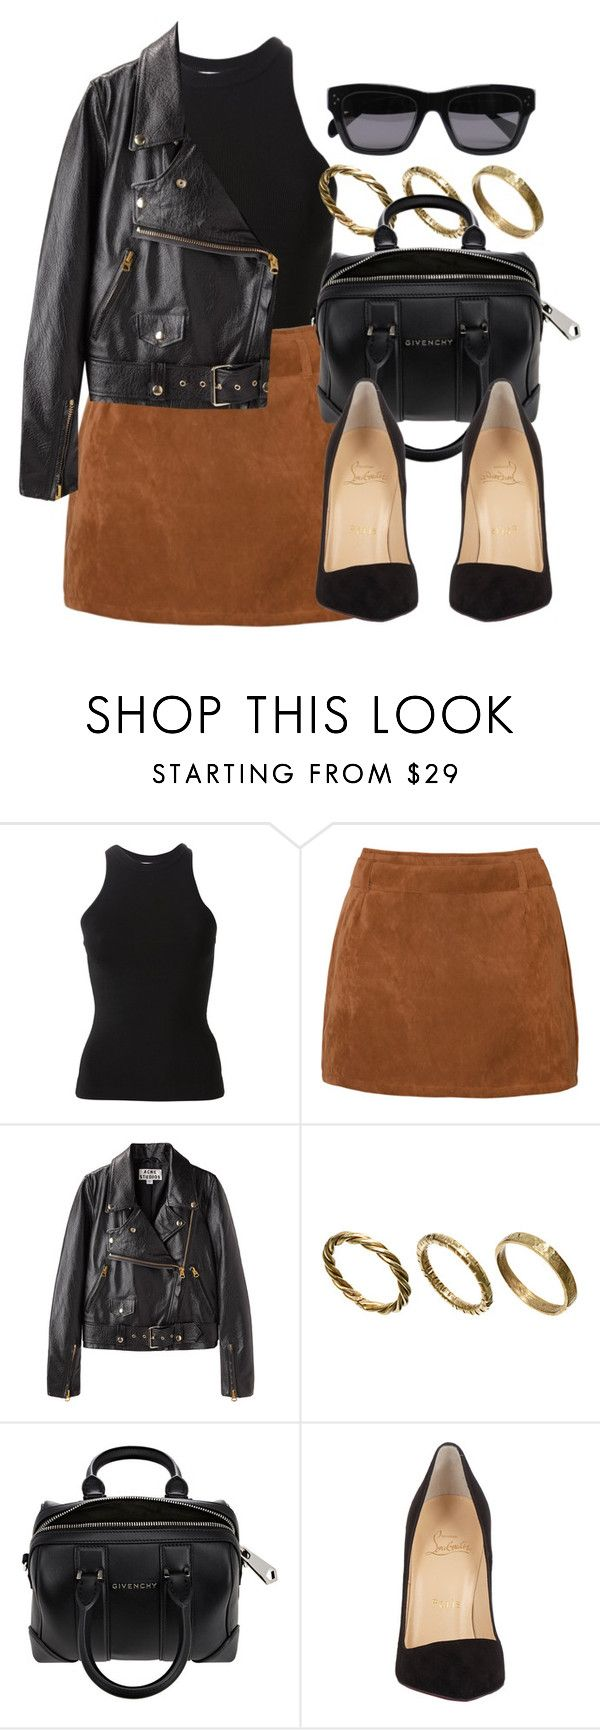 """""""Style #11279"""" by vany-alvarado ❤ liked on Polyvore featuring T By Alexander Wang, Acne Studios, Made, Givenchy, Christian Louboutin and CÉLINE"""